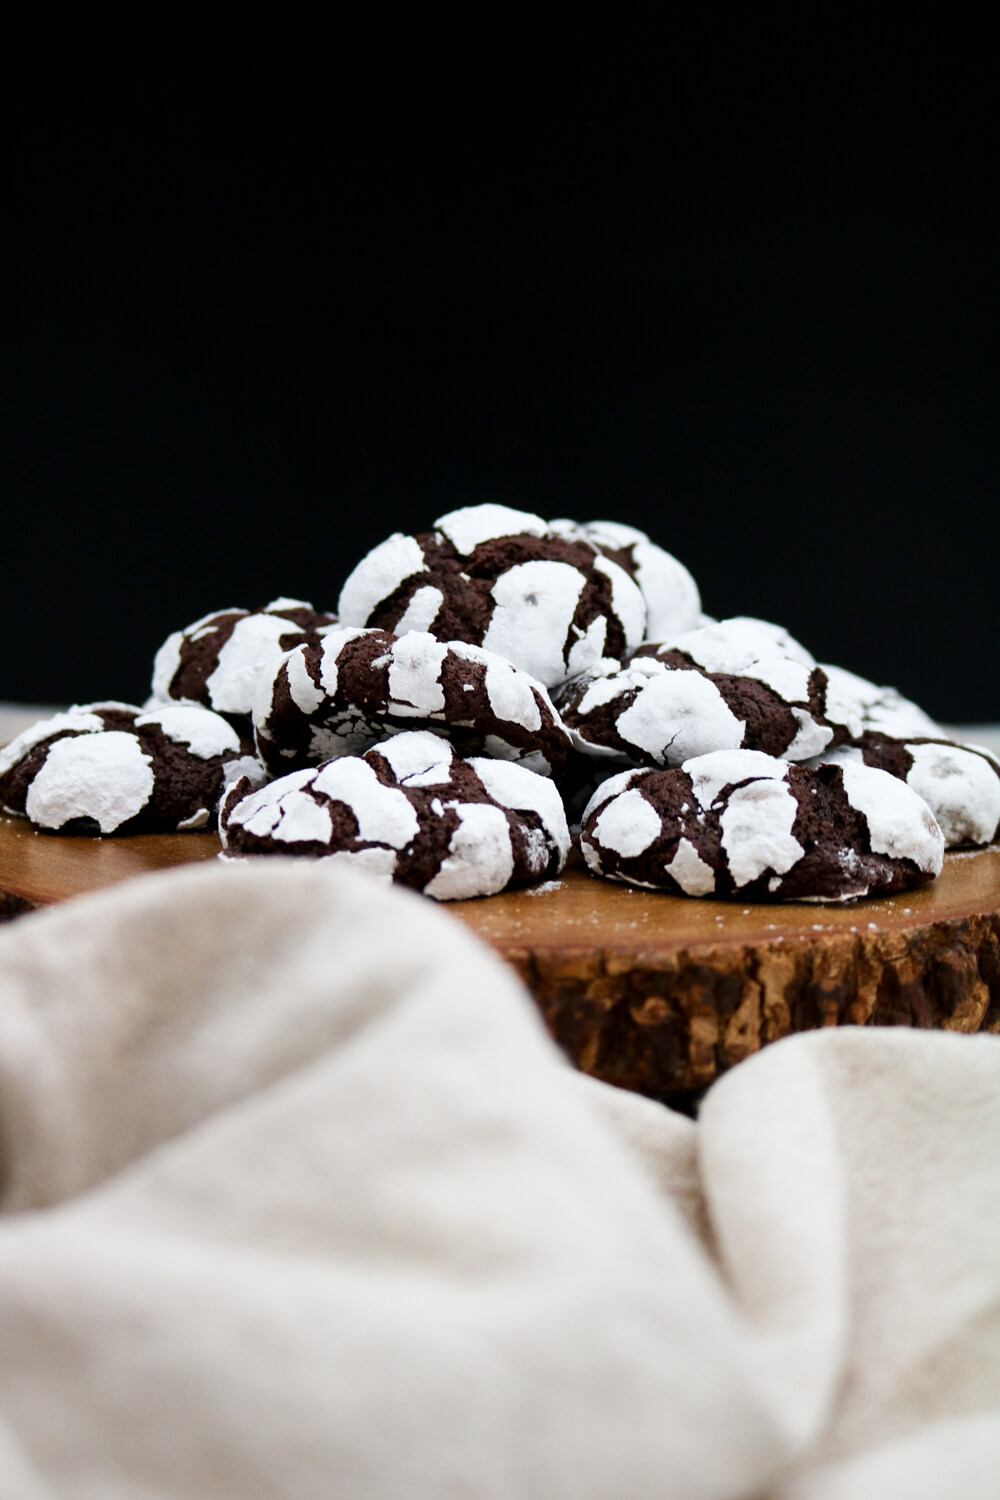 Chocolate Crinkle Cookies | Take Some Whisks